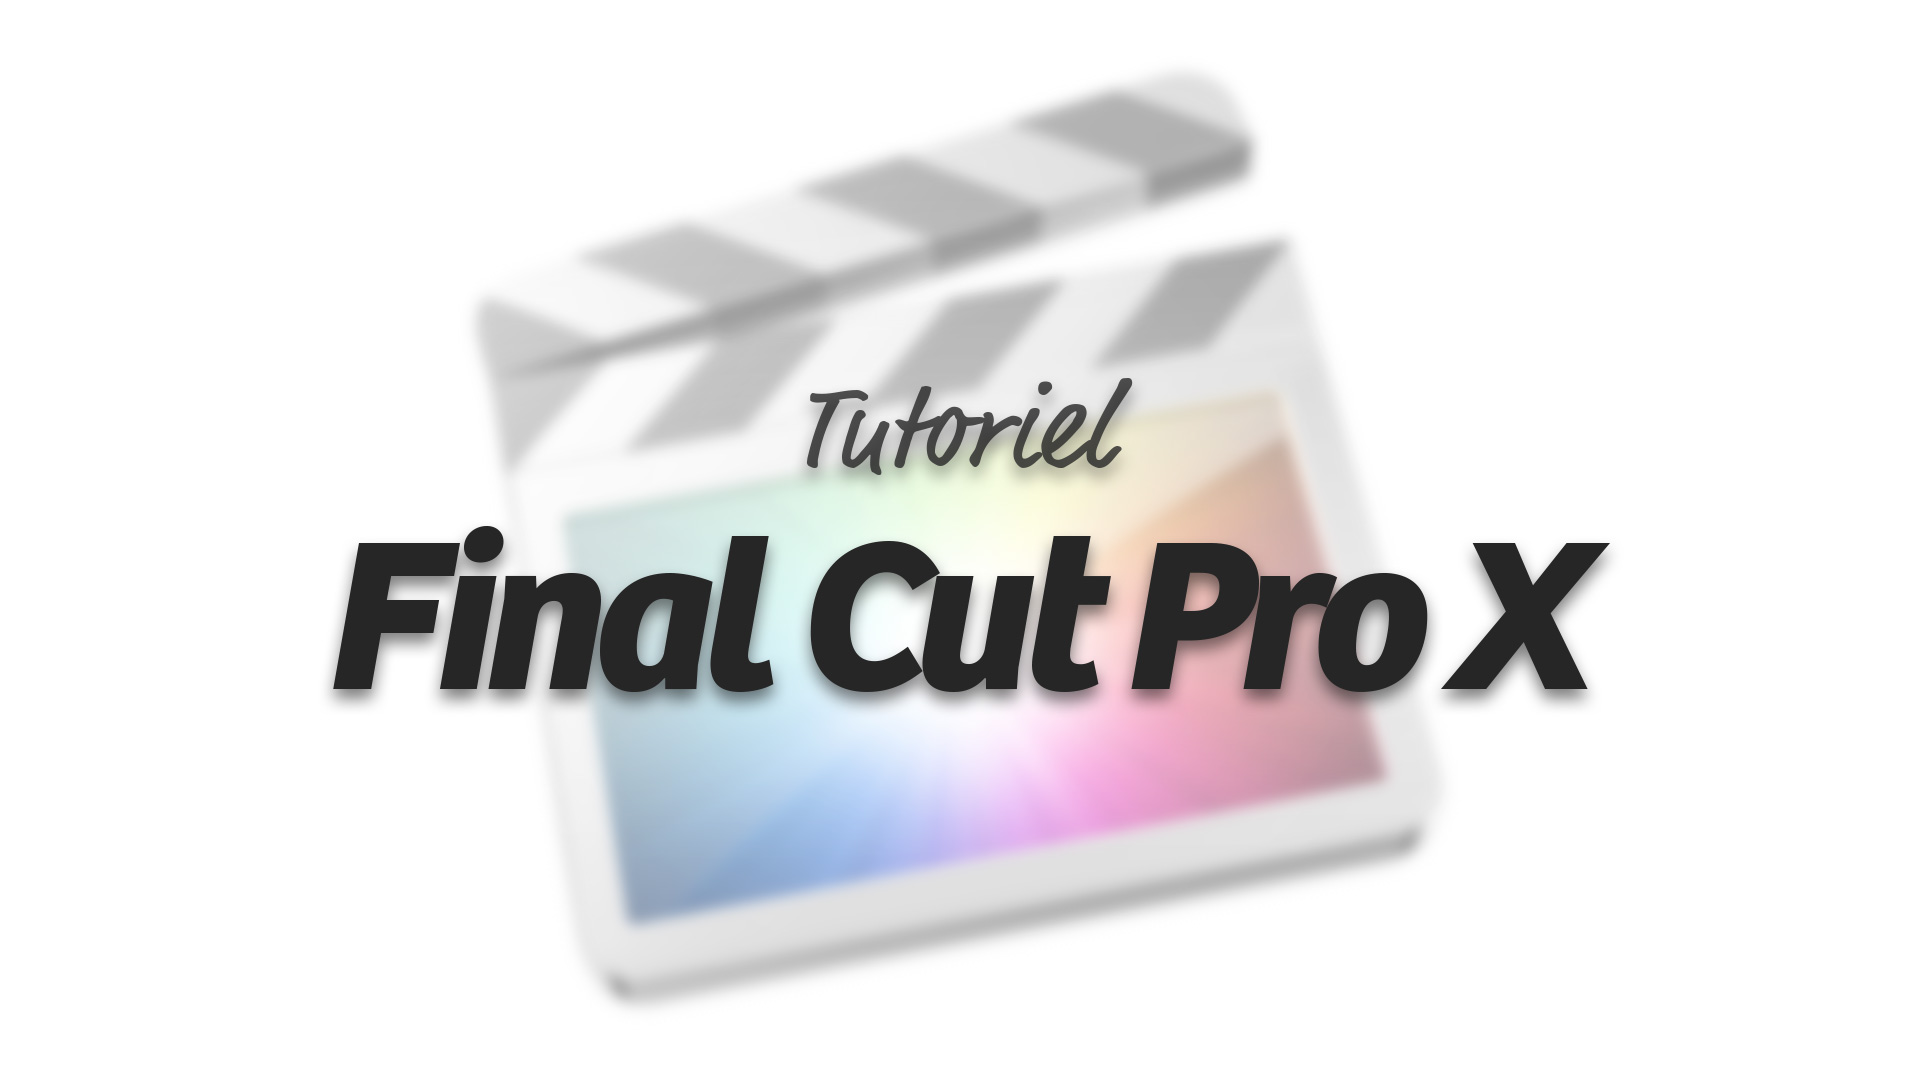 Tutoriel Final Cut Pro X